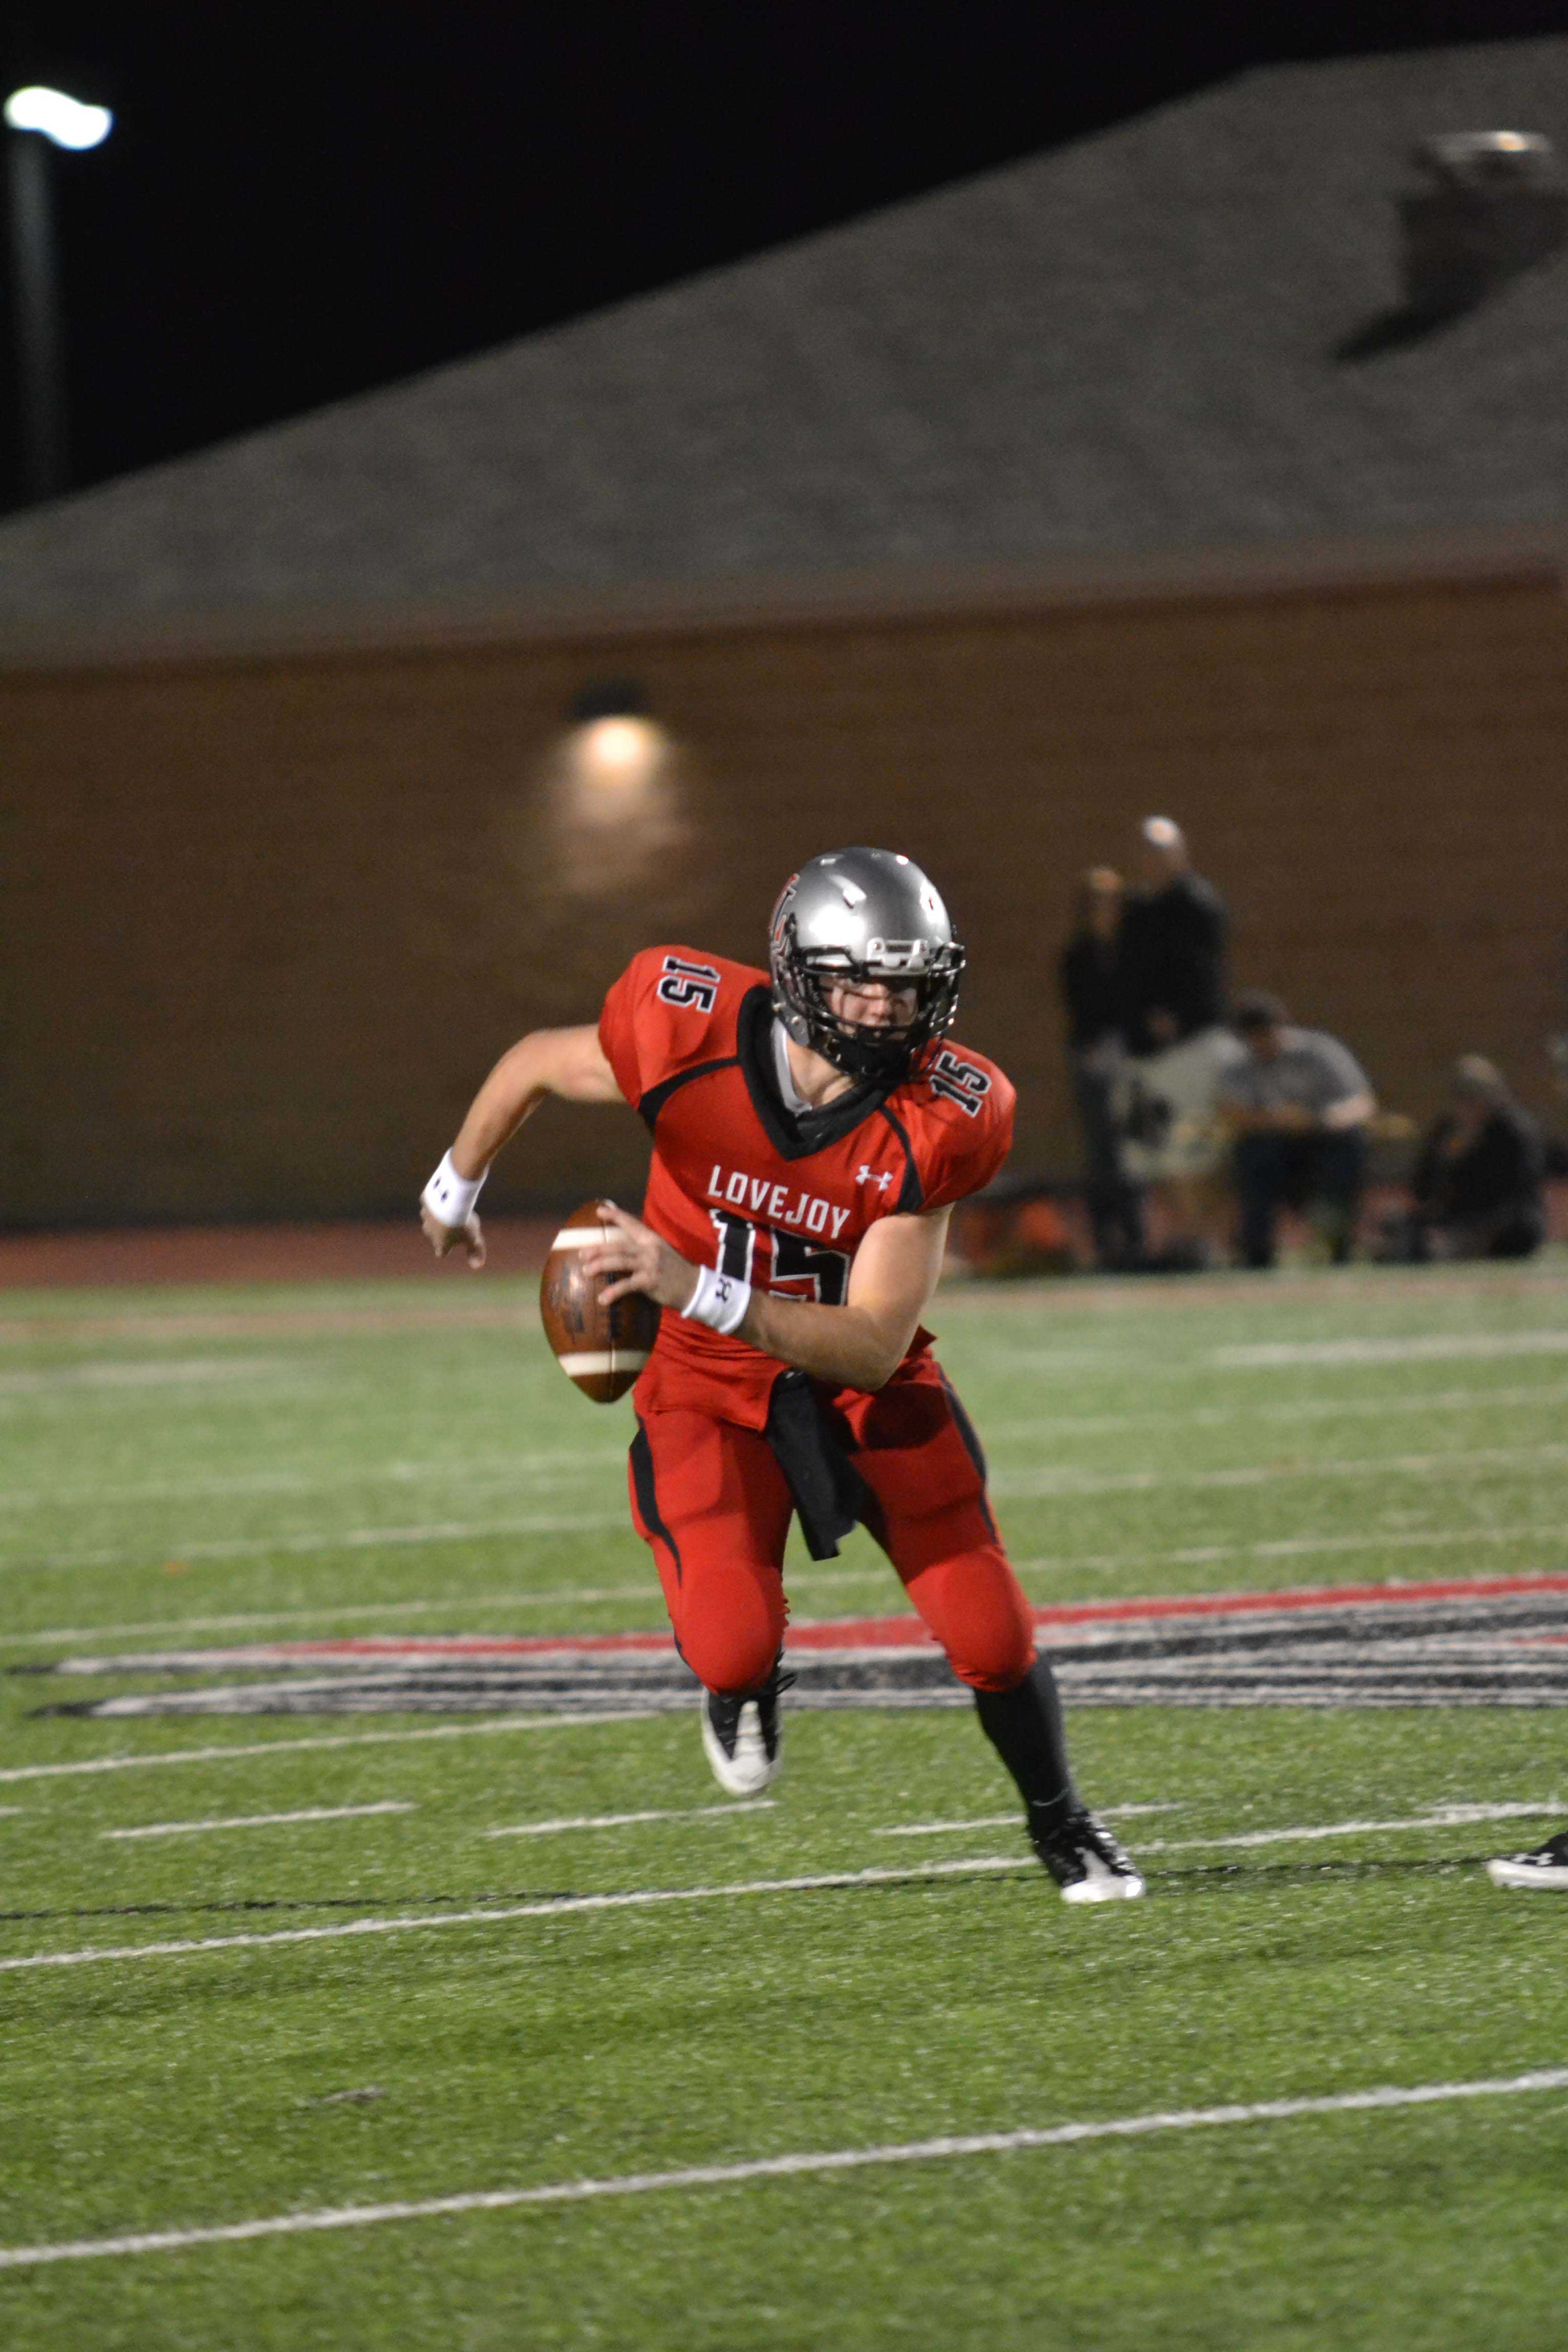 Junior Bowman Sells is the quarterback for the Leopards. The Red Ledger's Dom Mazero catches up with him.